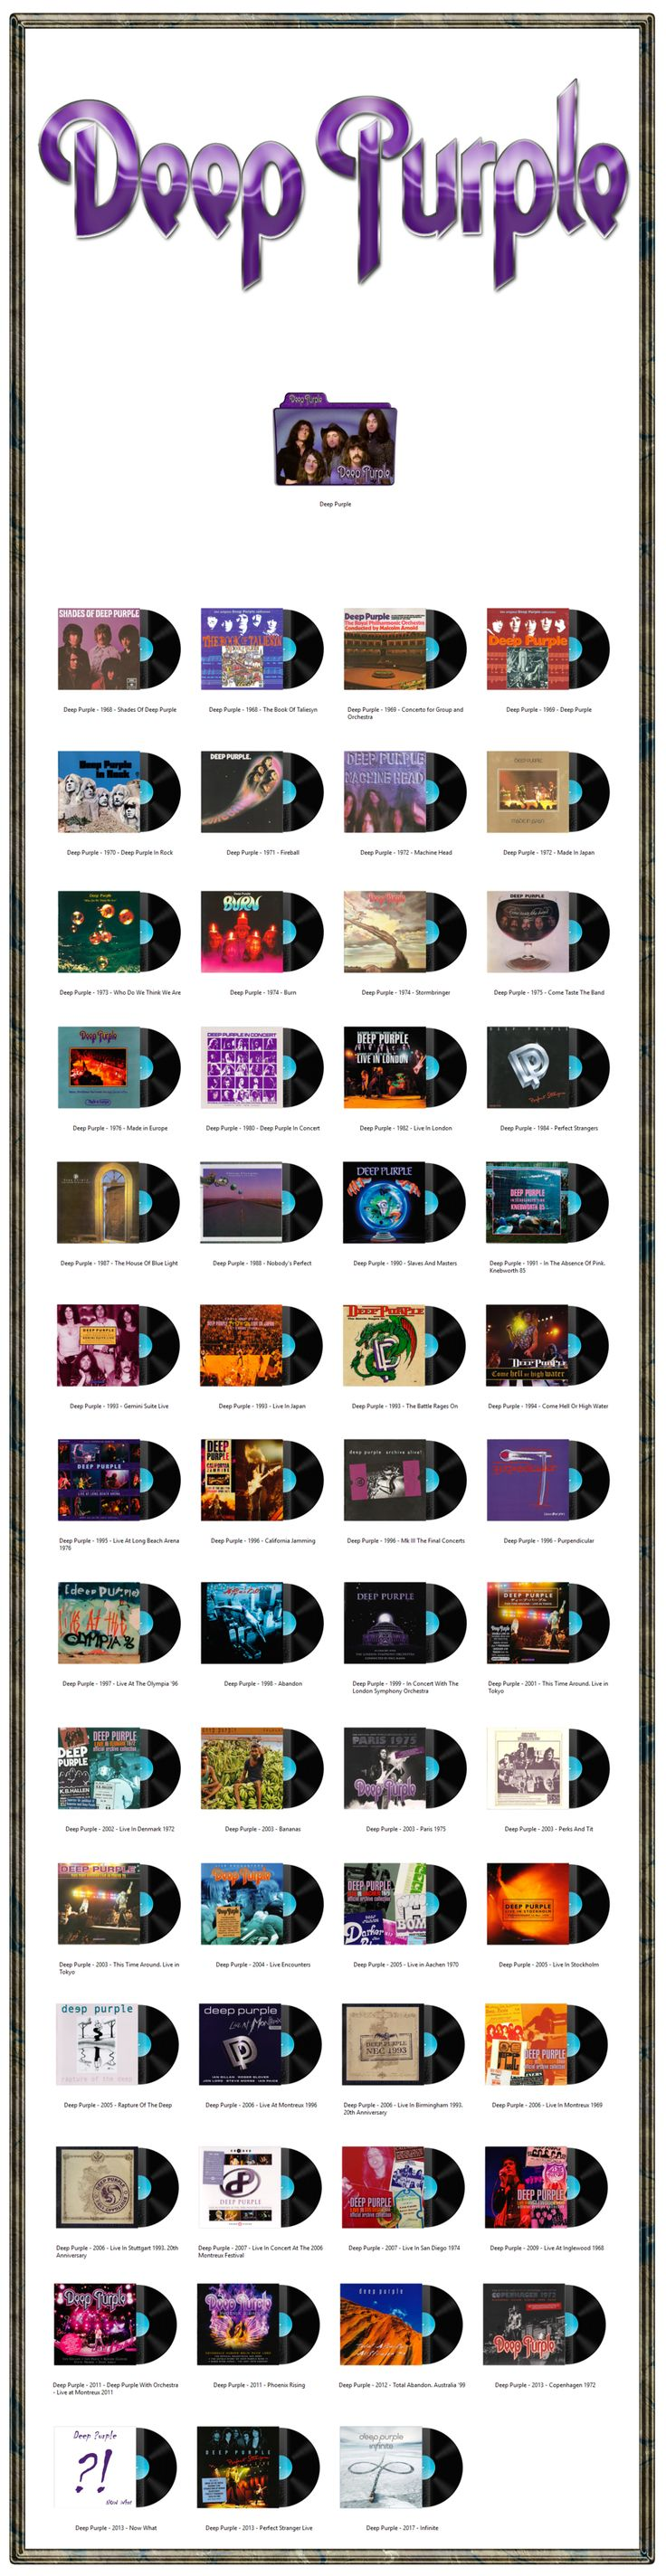 Deep Purple Discography Icons ICO PNG by AlbumArtIcons